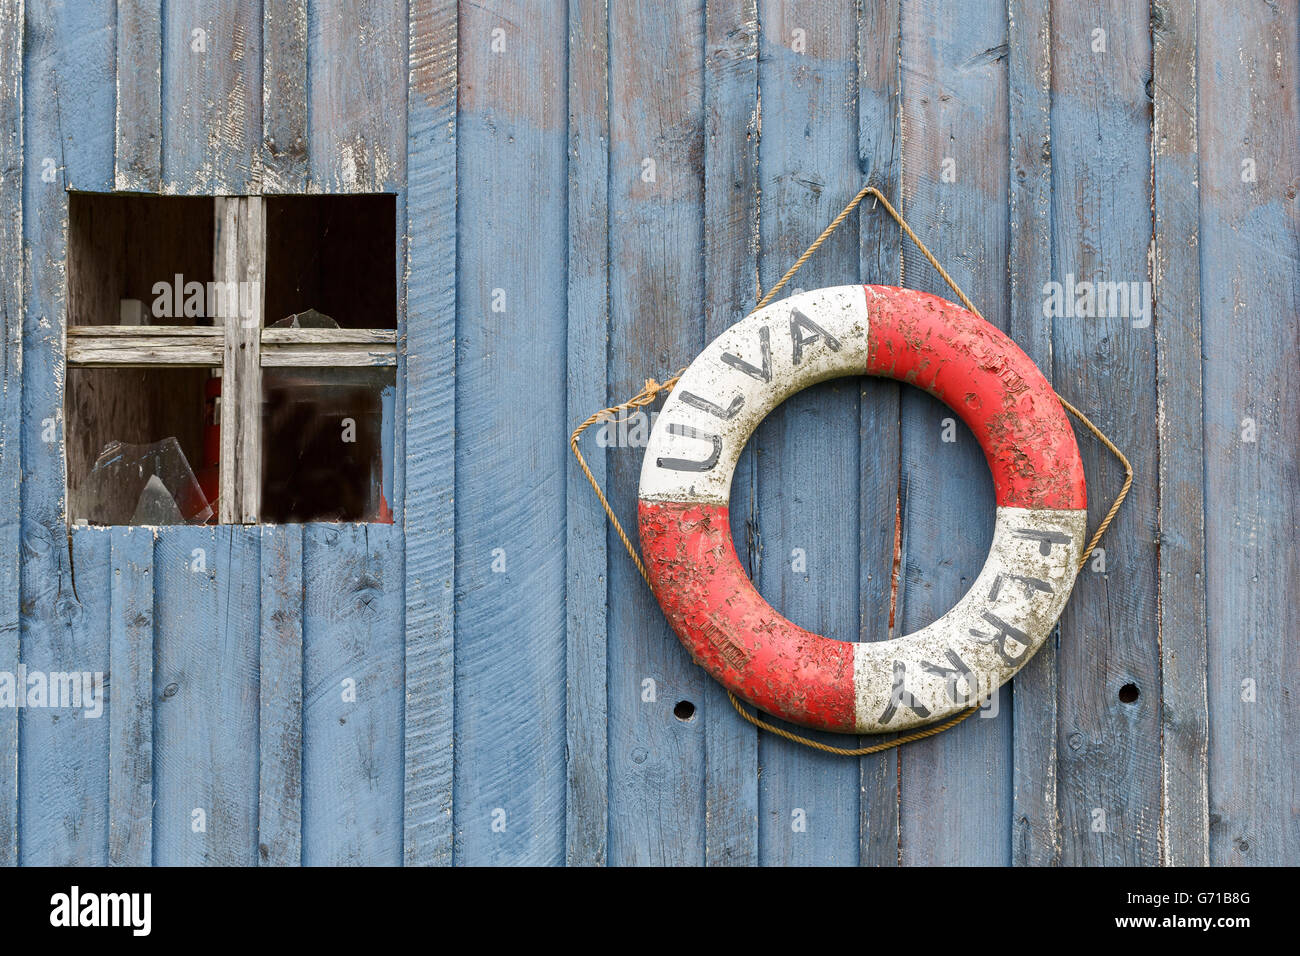 Lifebelt sign 'Ulva Ferry'. Ulva, Mull, Scotland - Stock Image